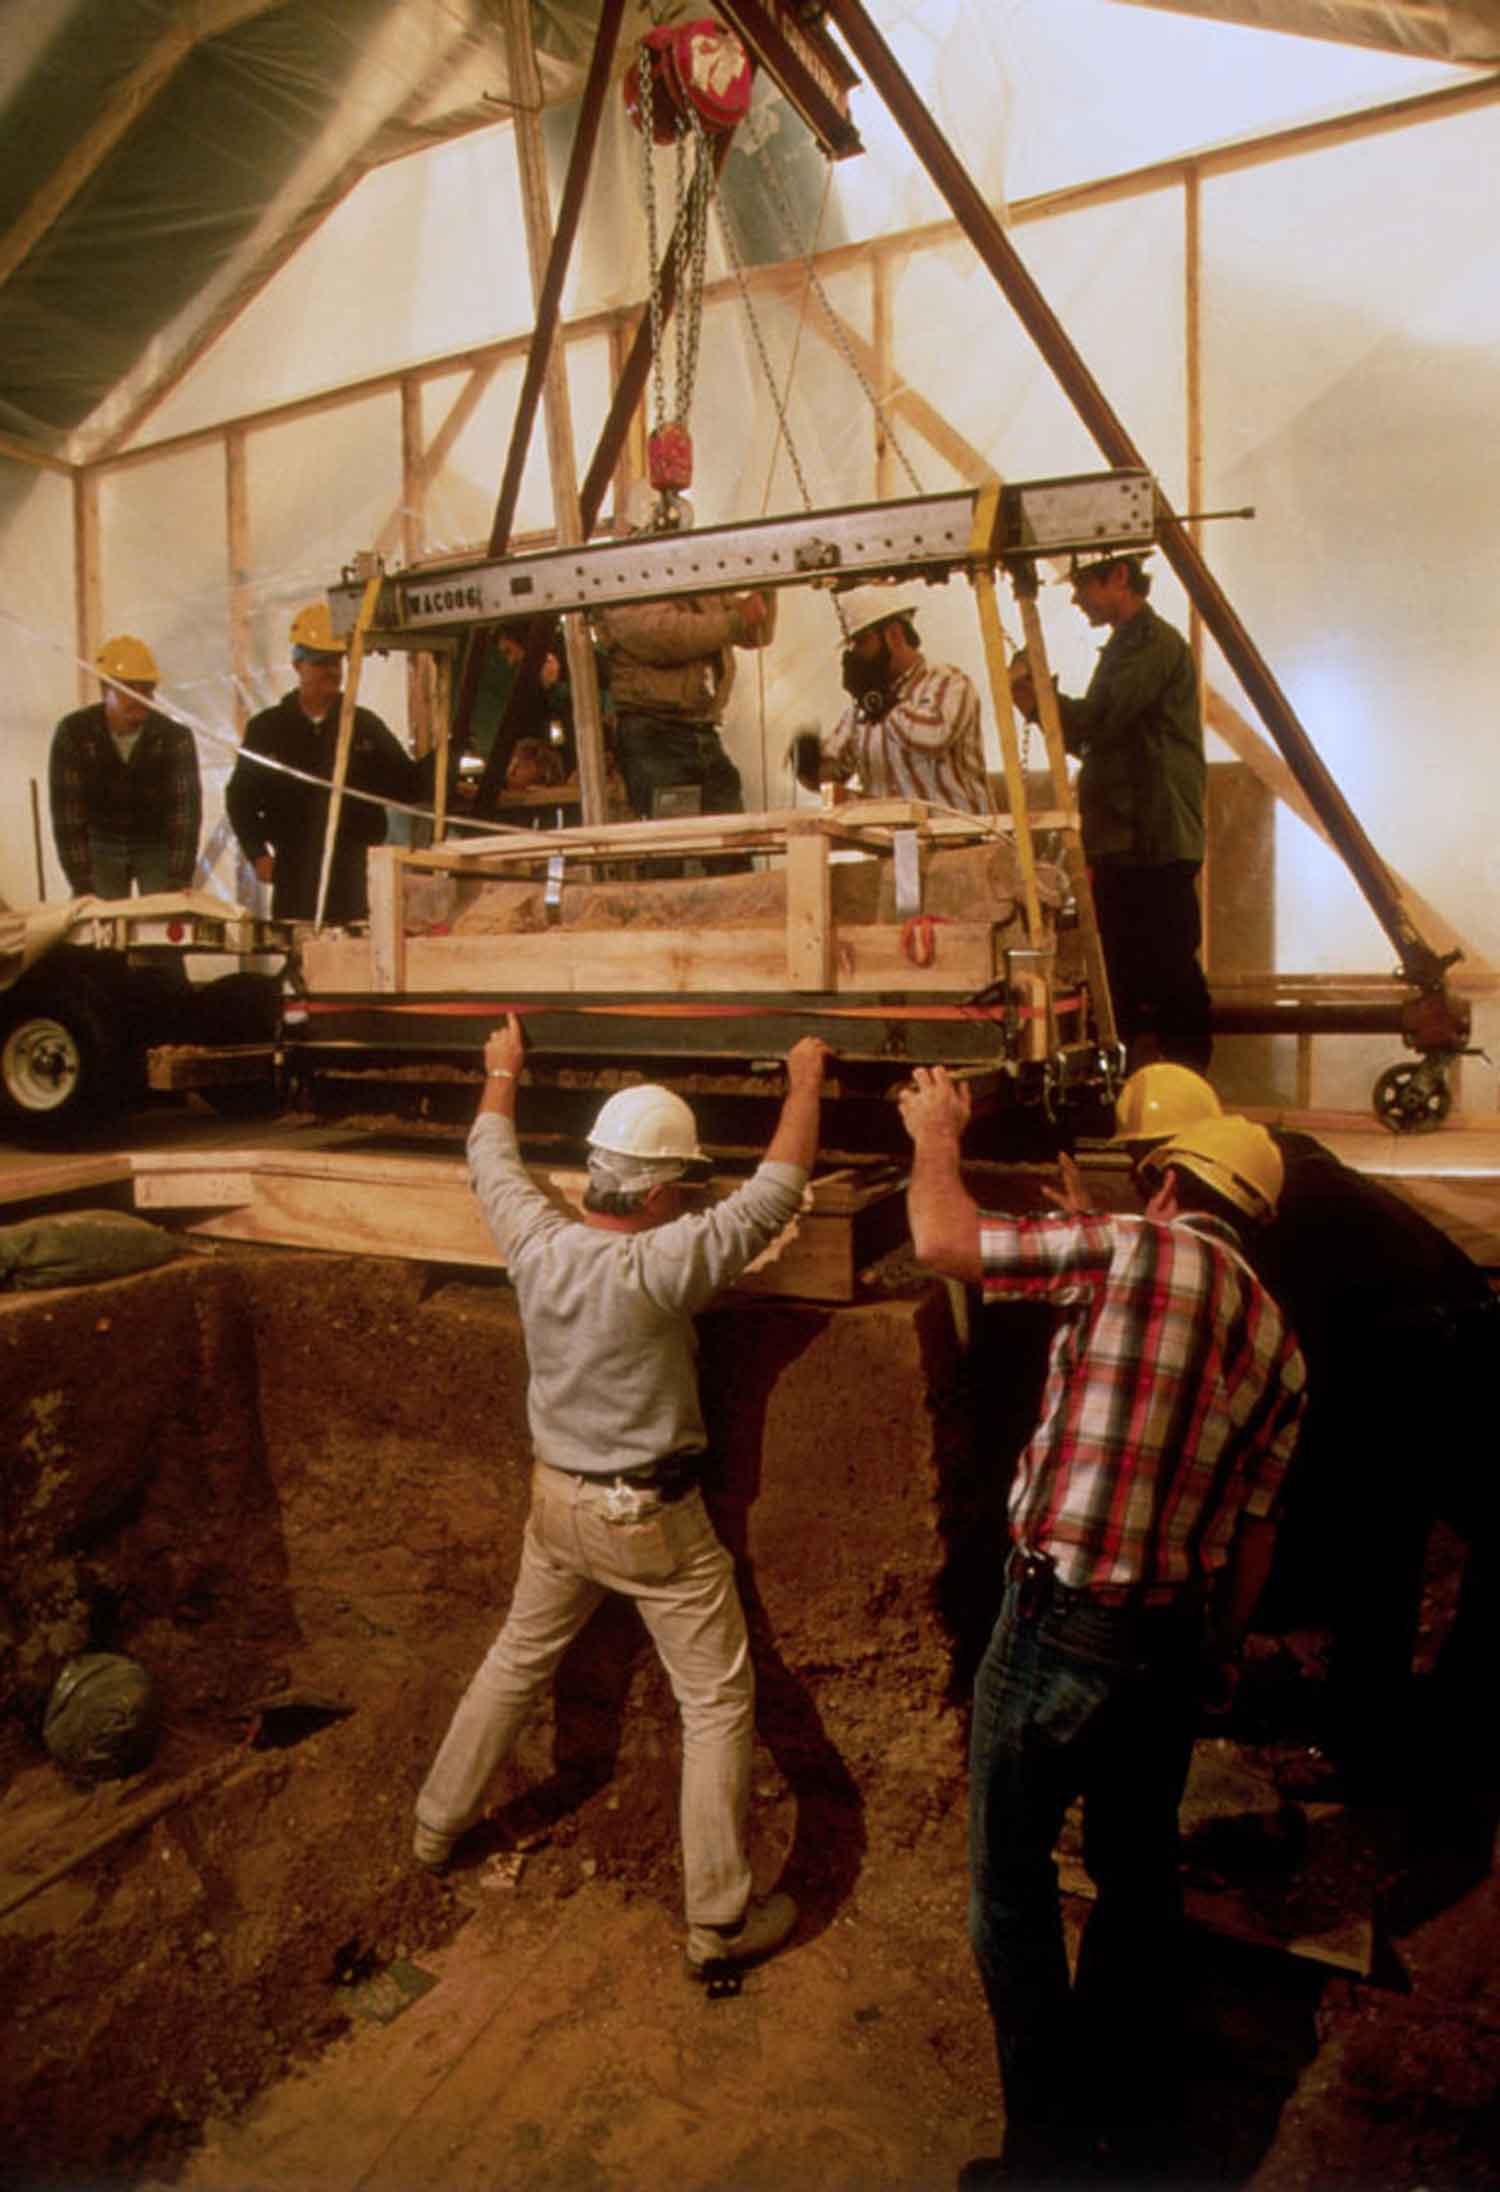 Lifting the lead coffins during removal for study